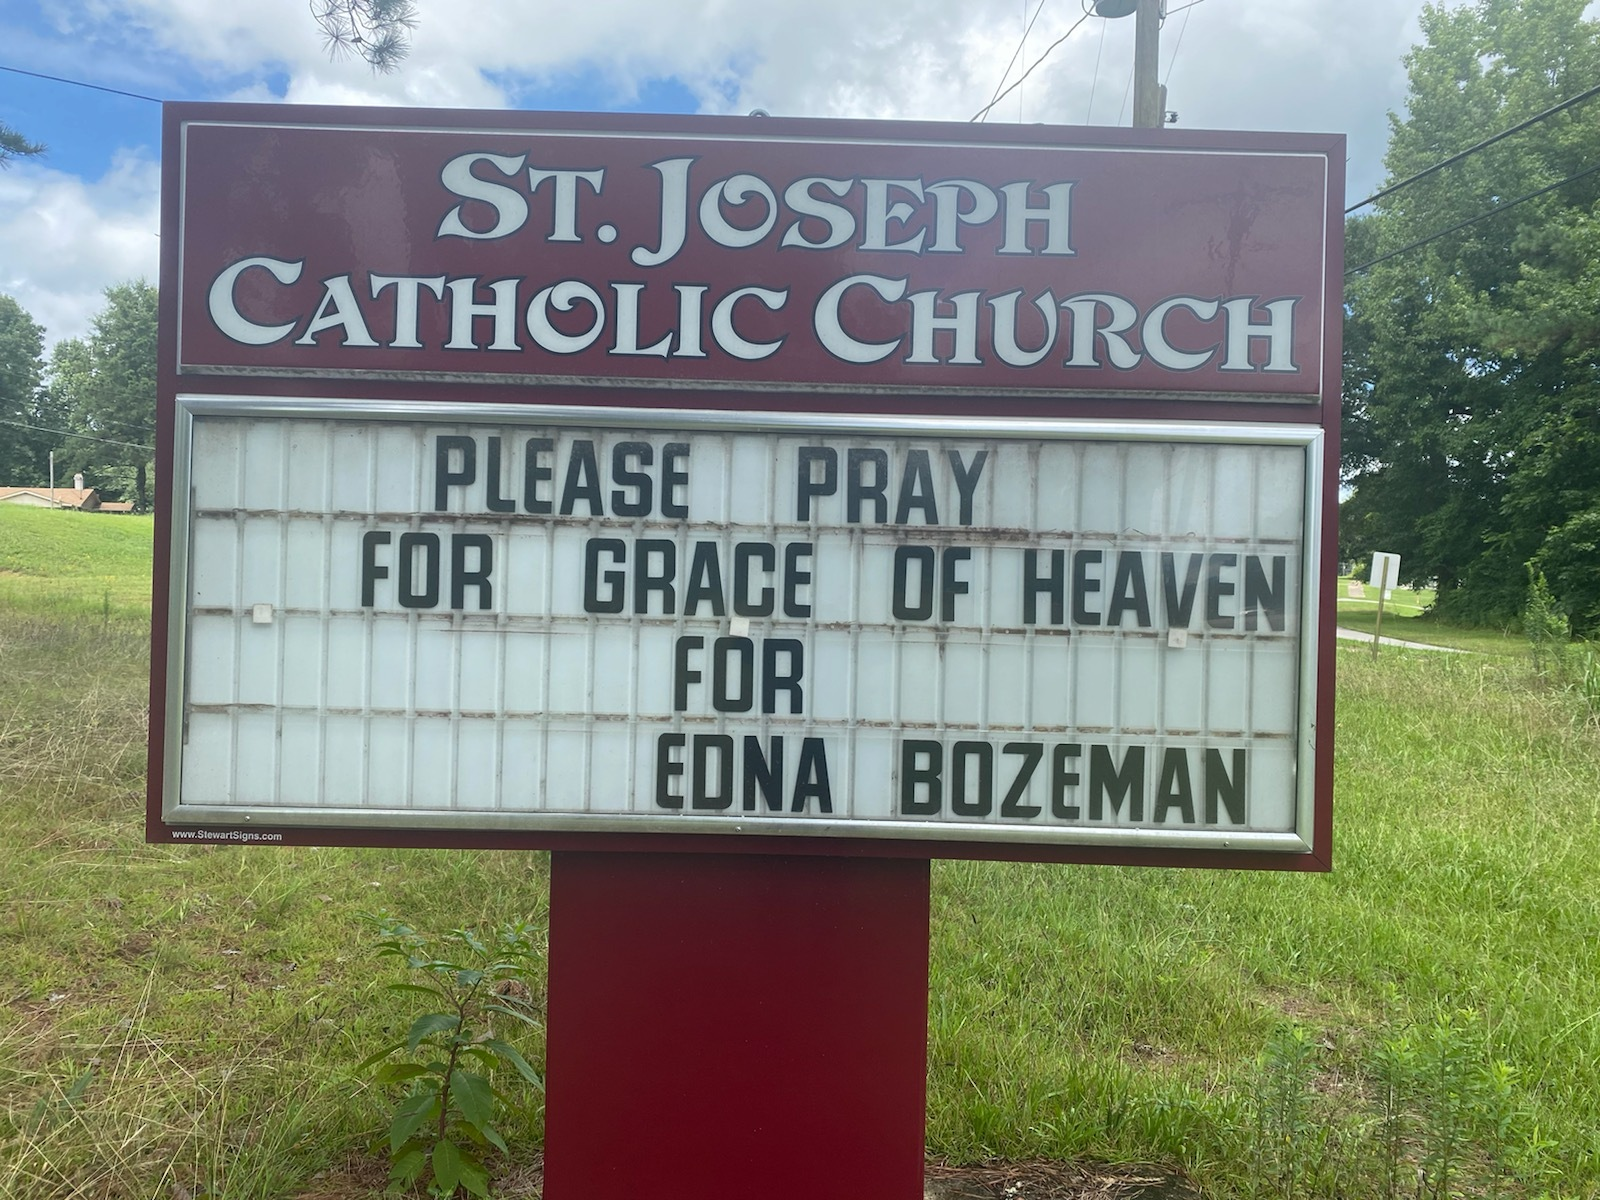 Thank you -- Our Parishioners for your prayers during this difficult time